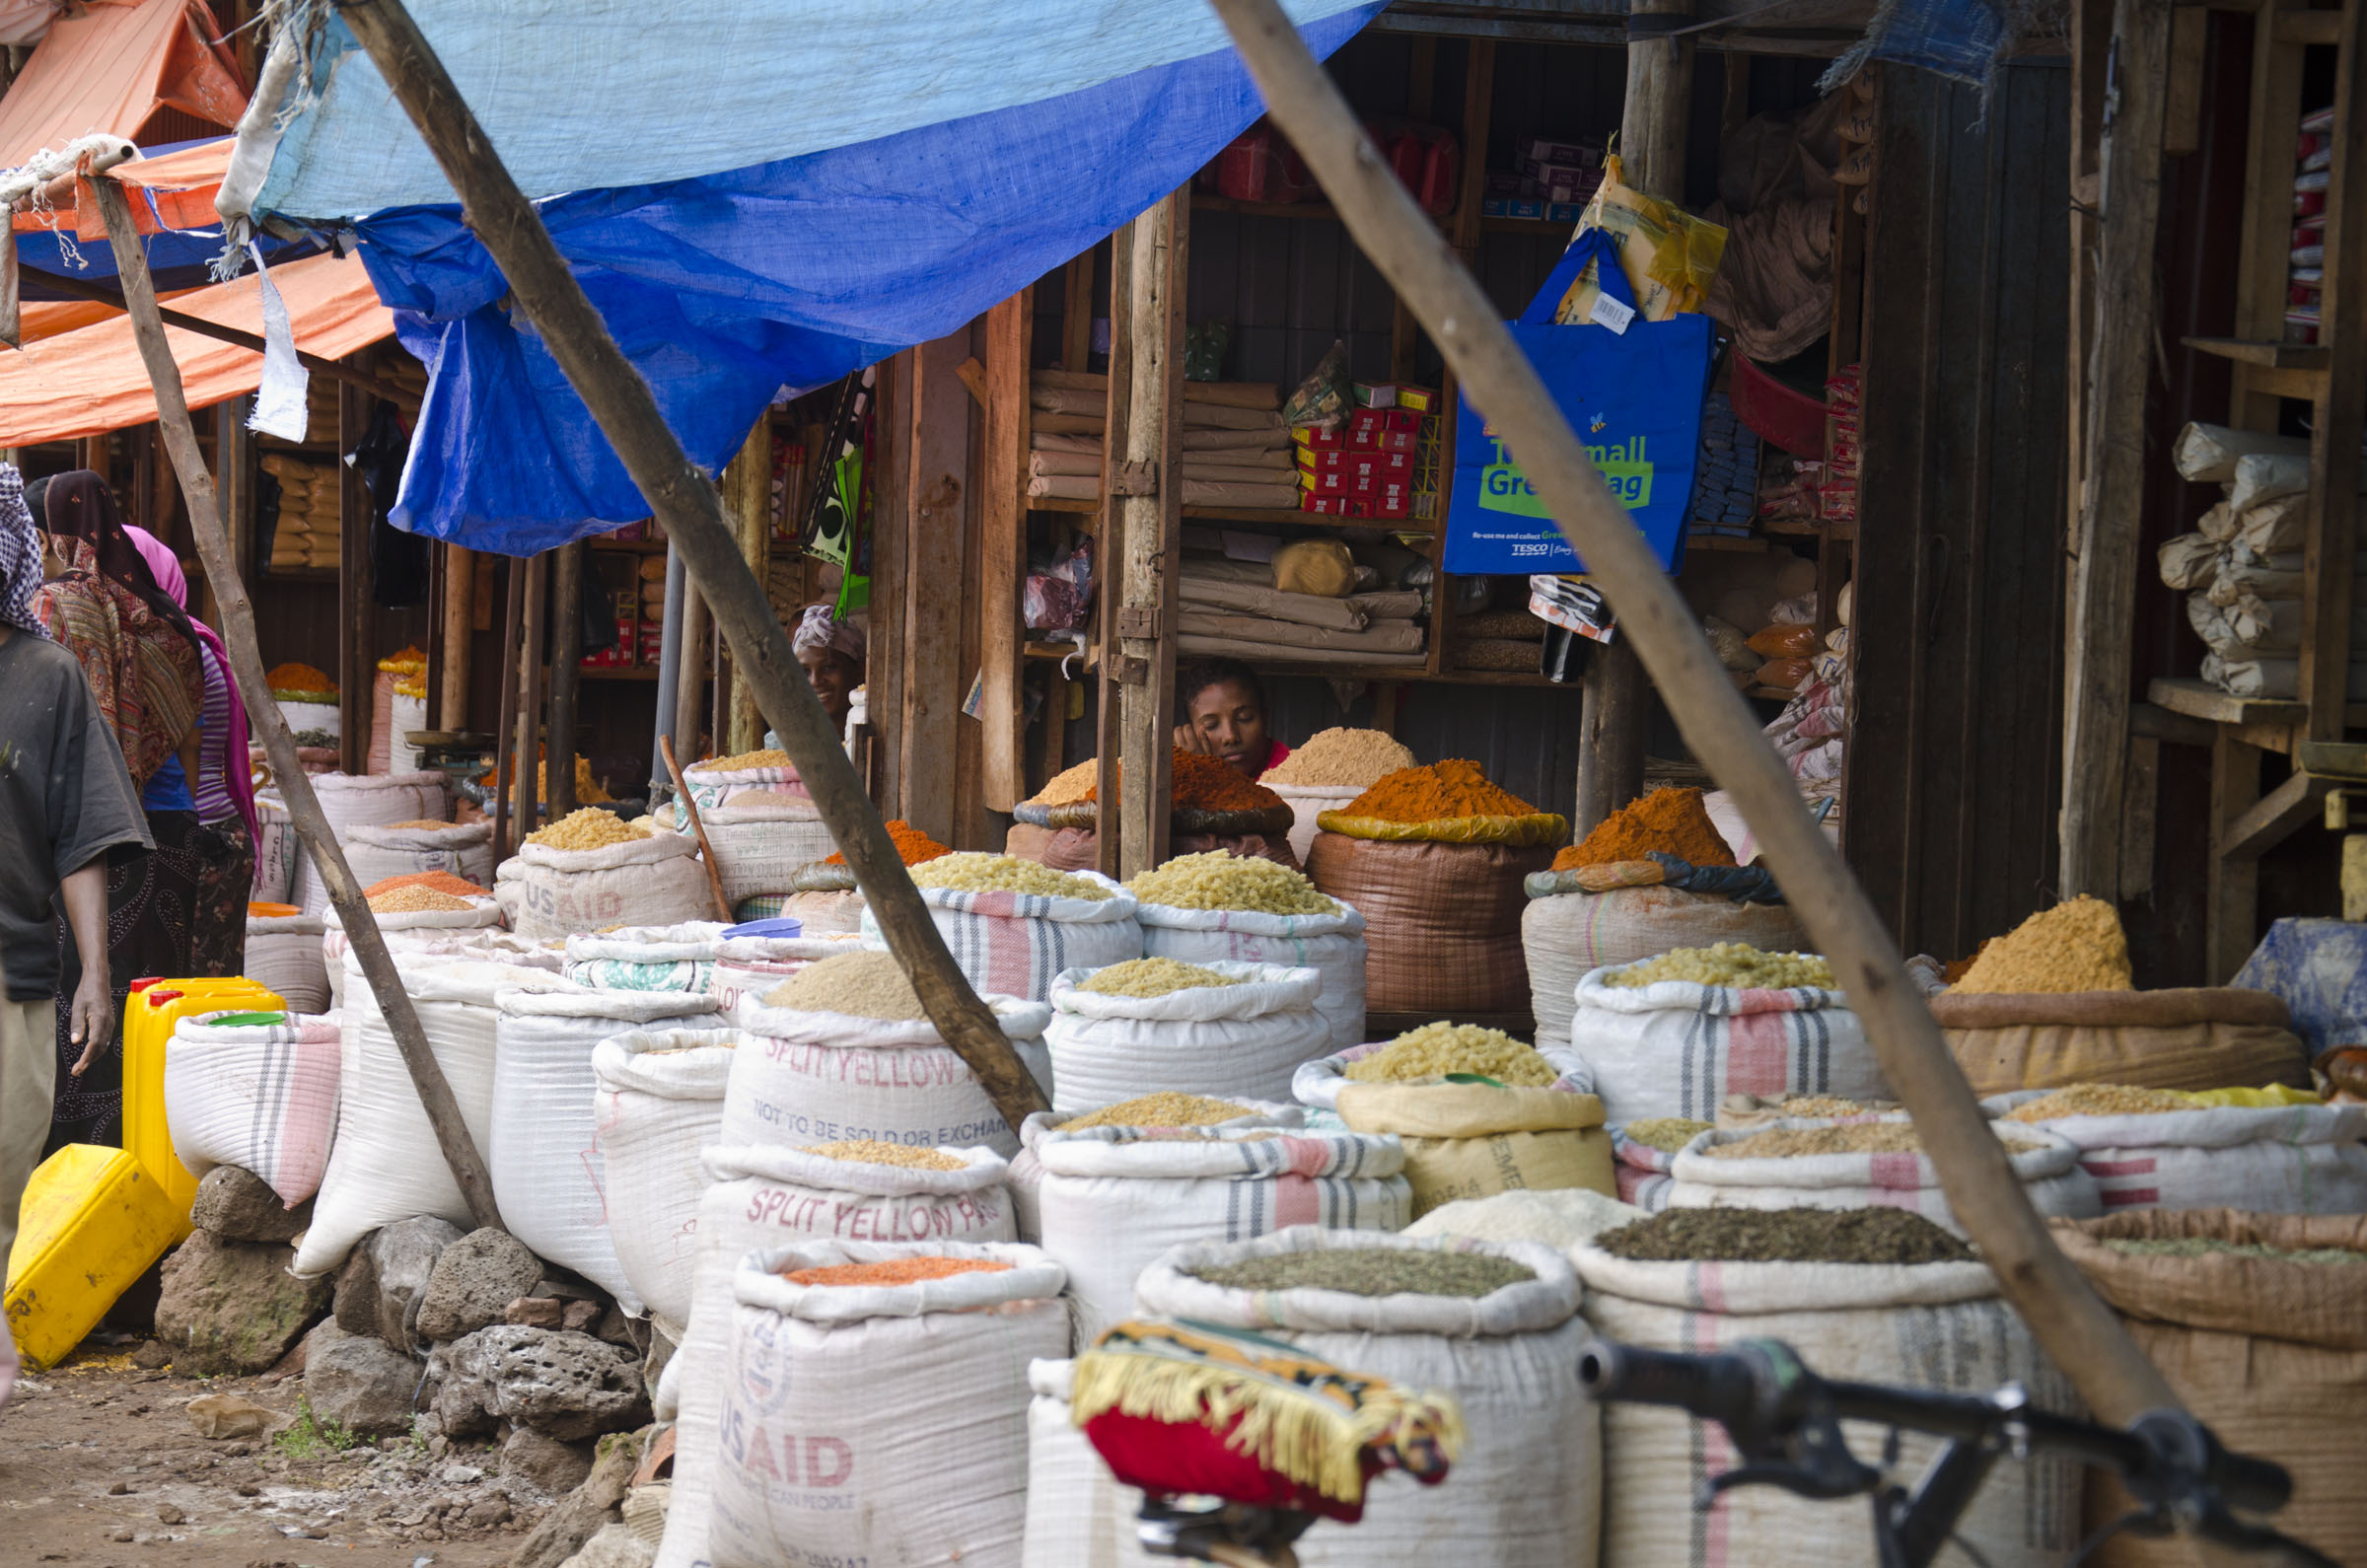 Sacks of grain and pulses on Ethiopian market stall